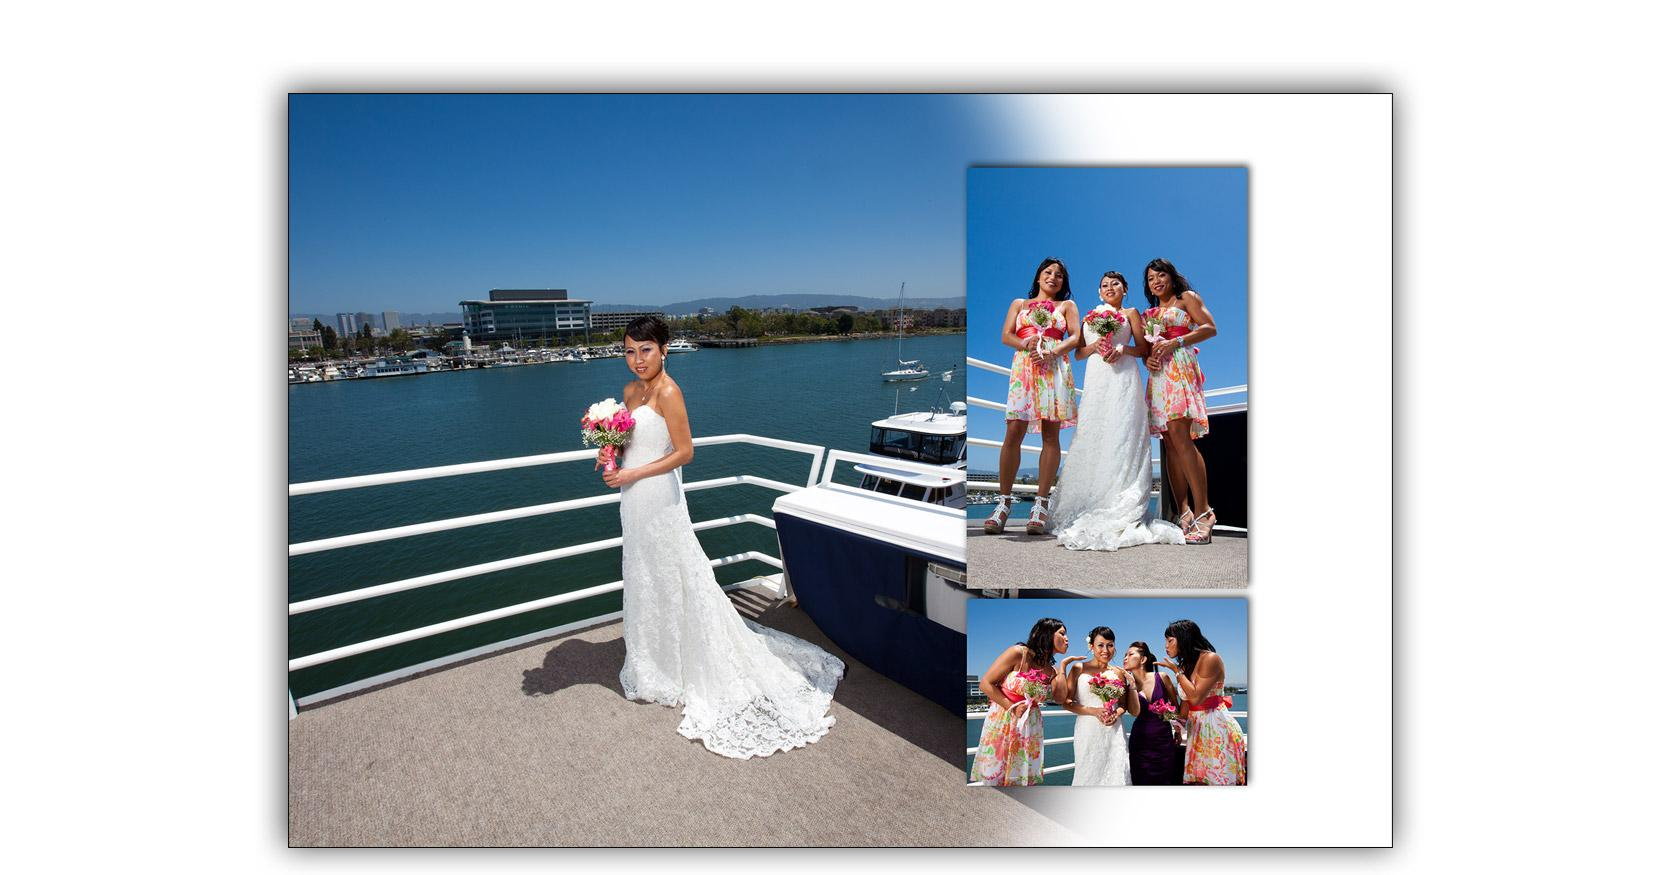 San Francisco Bay yacht boat wedding cruise Commodore Events Merlot photography album 04